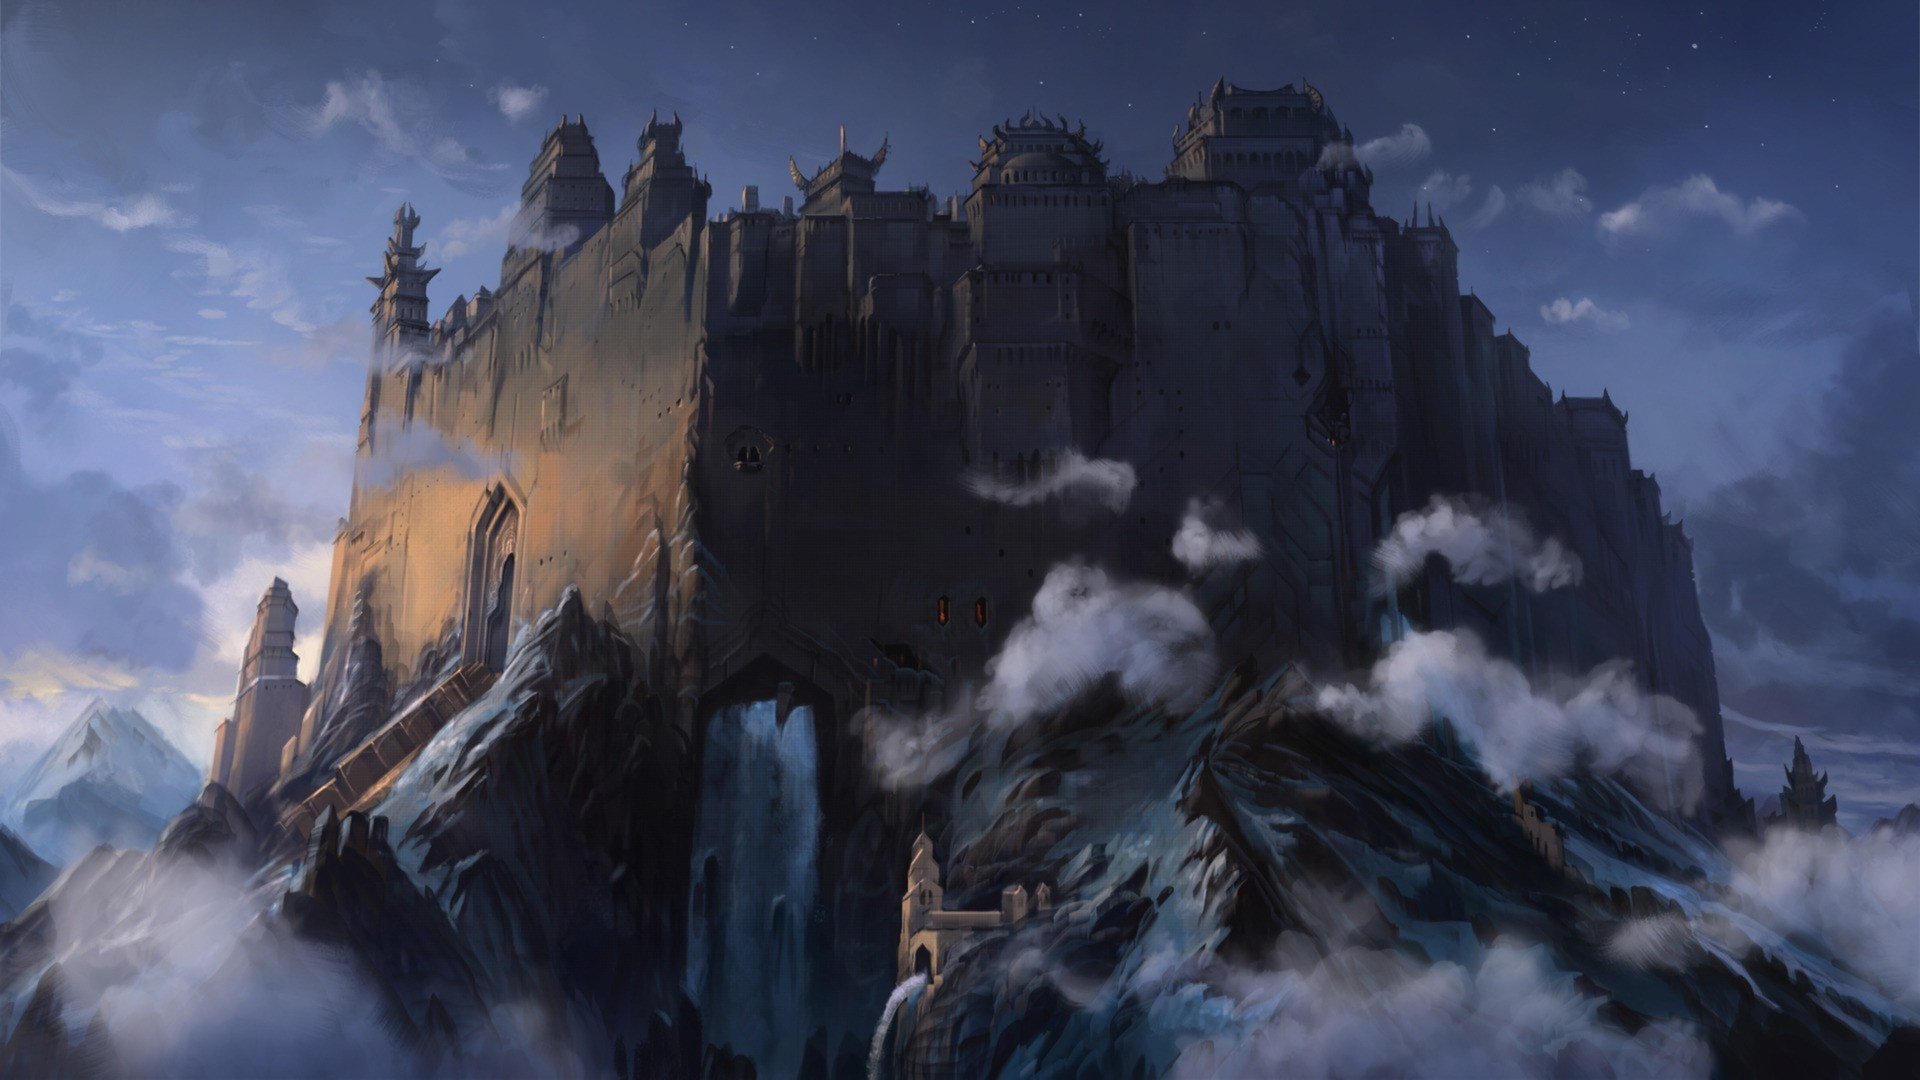 1920x1080 fantasy Art, Artwork, Clouds, Mountain, Forts, Castle Wallpapers HD /  Desktop and Mobile Backgrounds